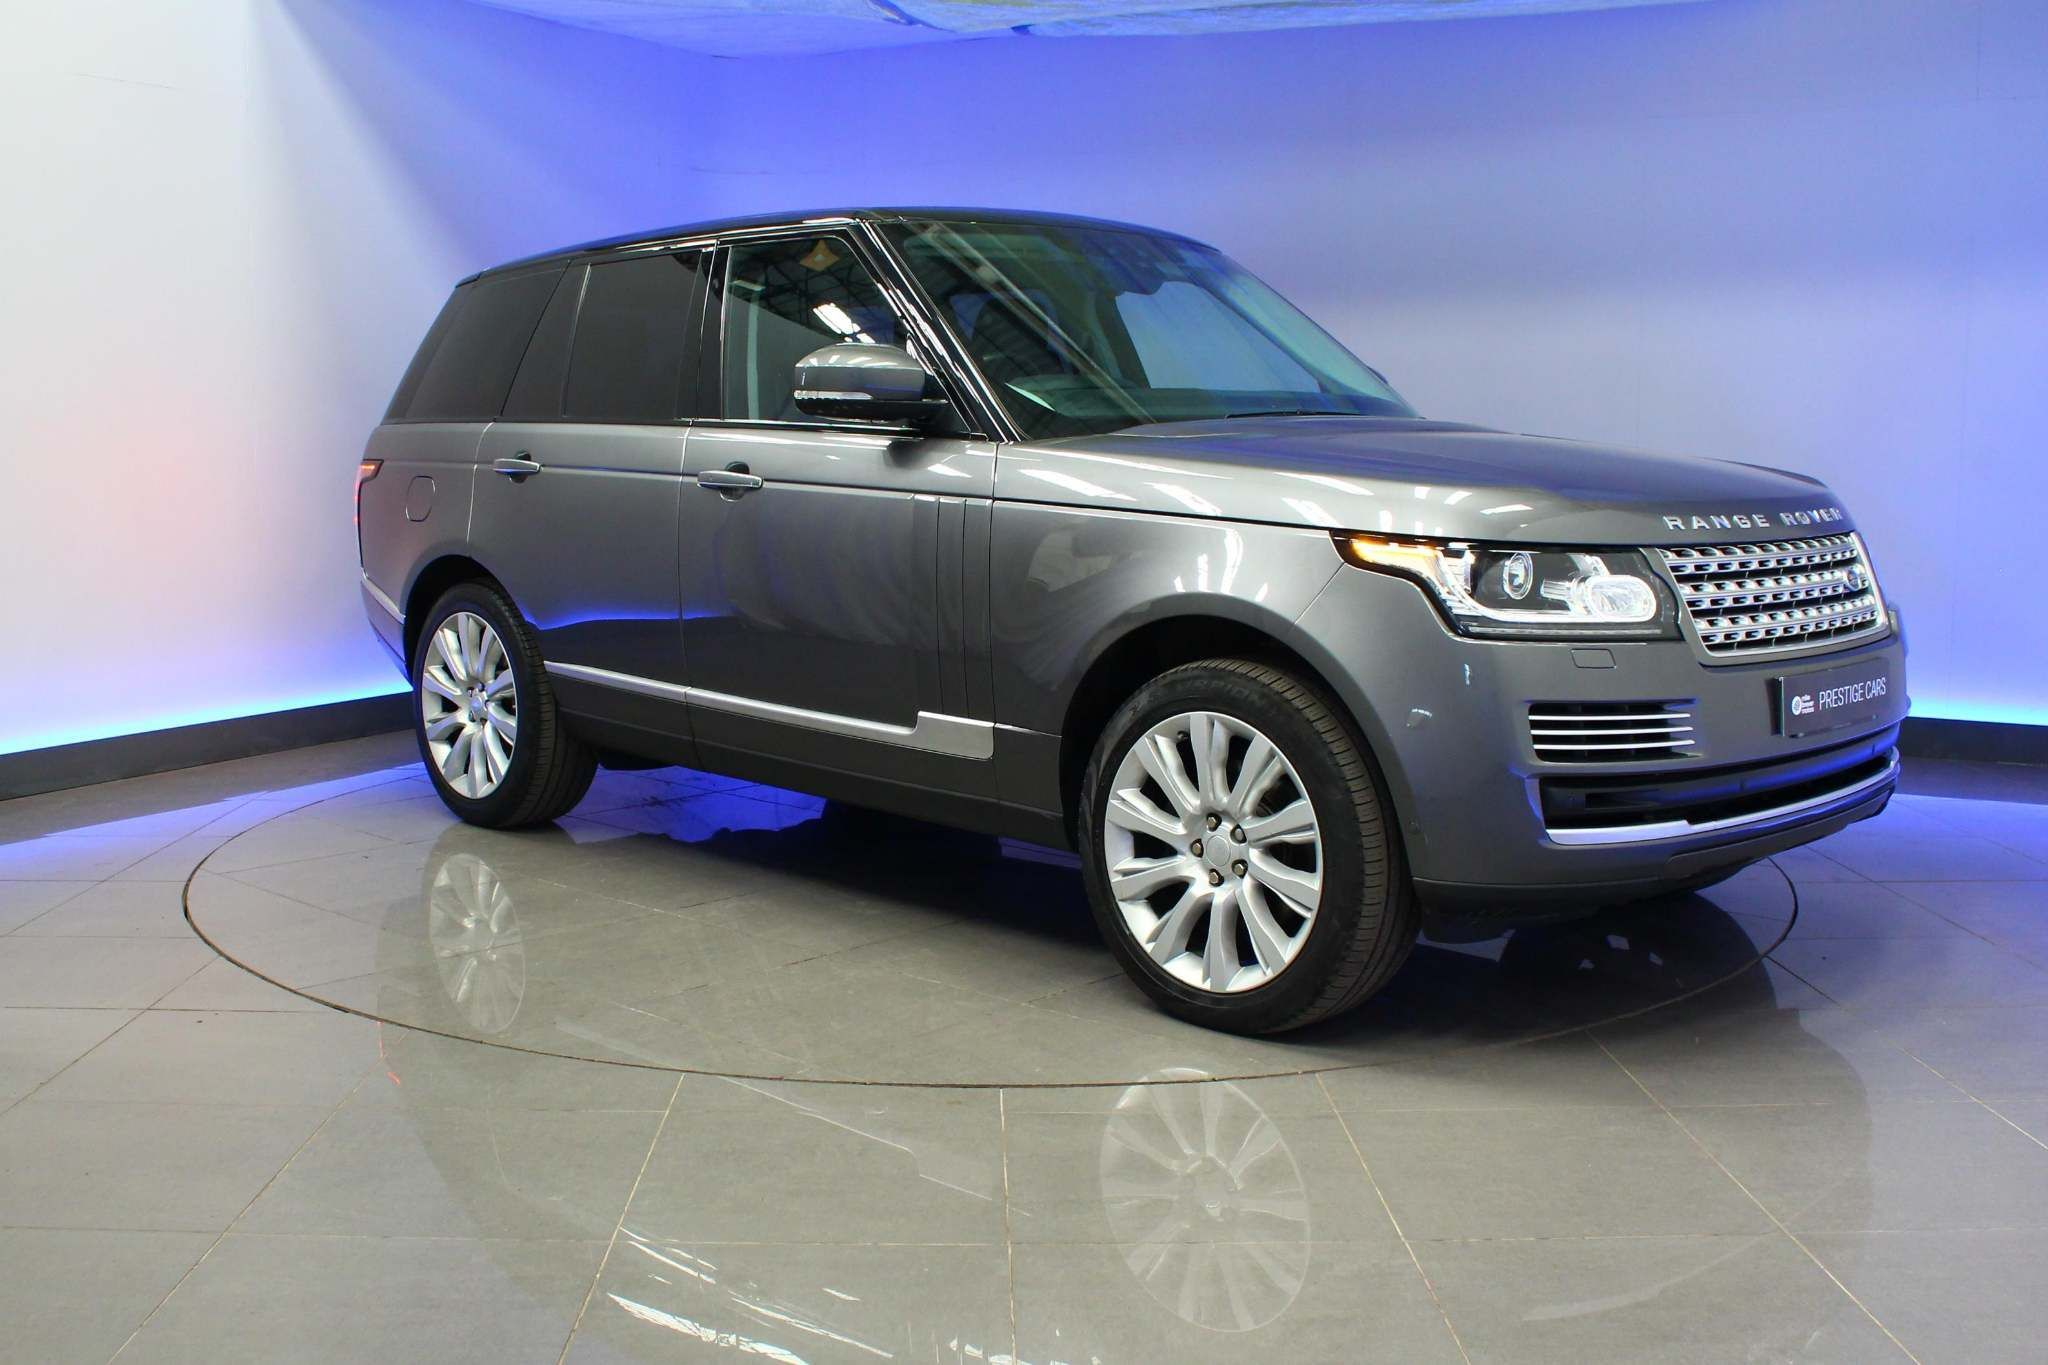 Used Land Rover Range Rover 3.0 Td V6 Vogue Se Auto 4wd (s/s) 5dr